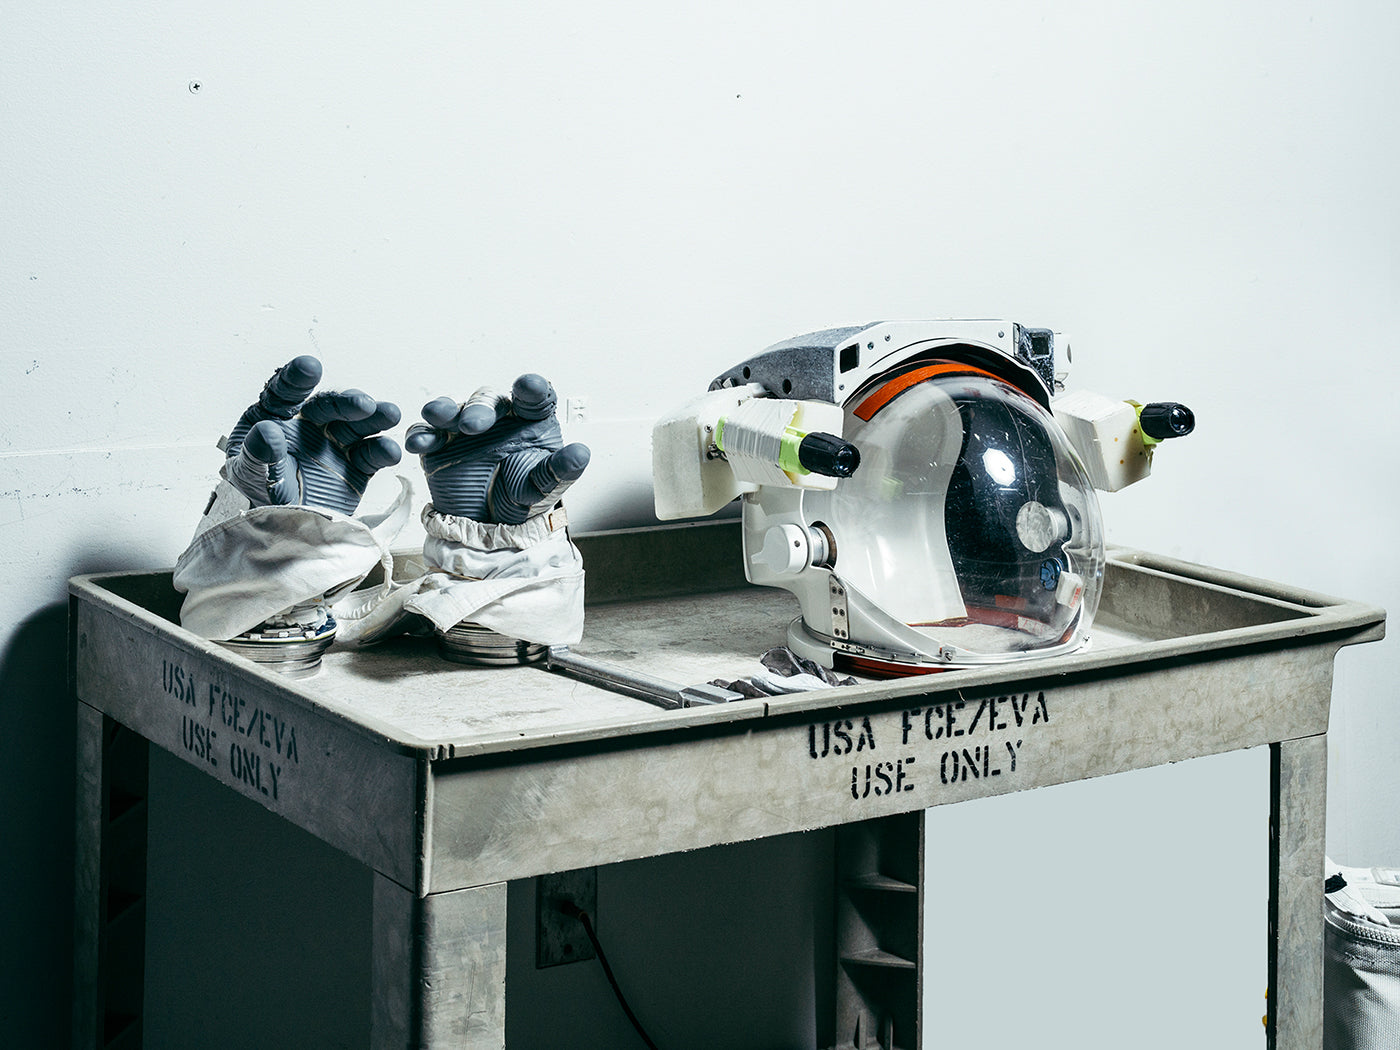 Astronaut equipment at NASA. Photo by Mattia Blasamini